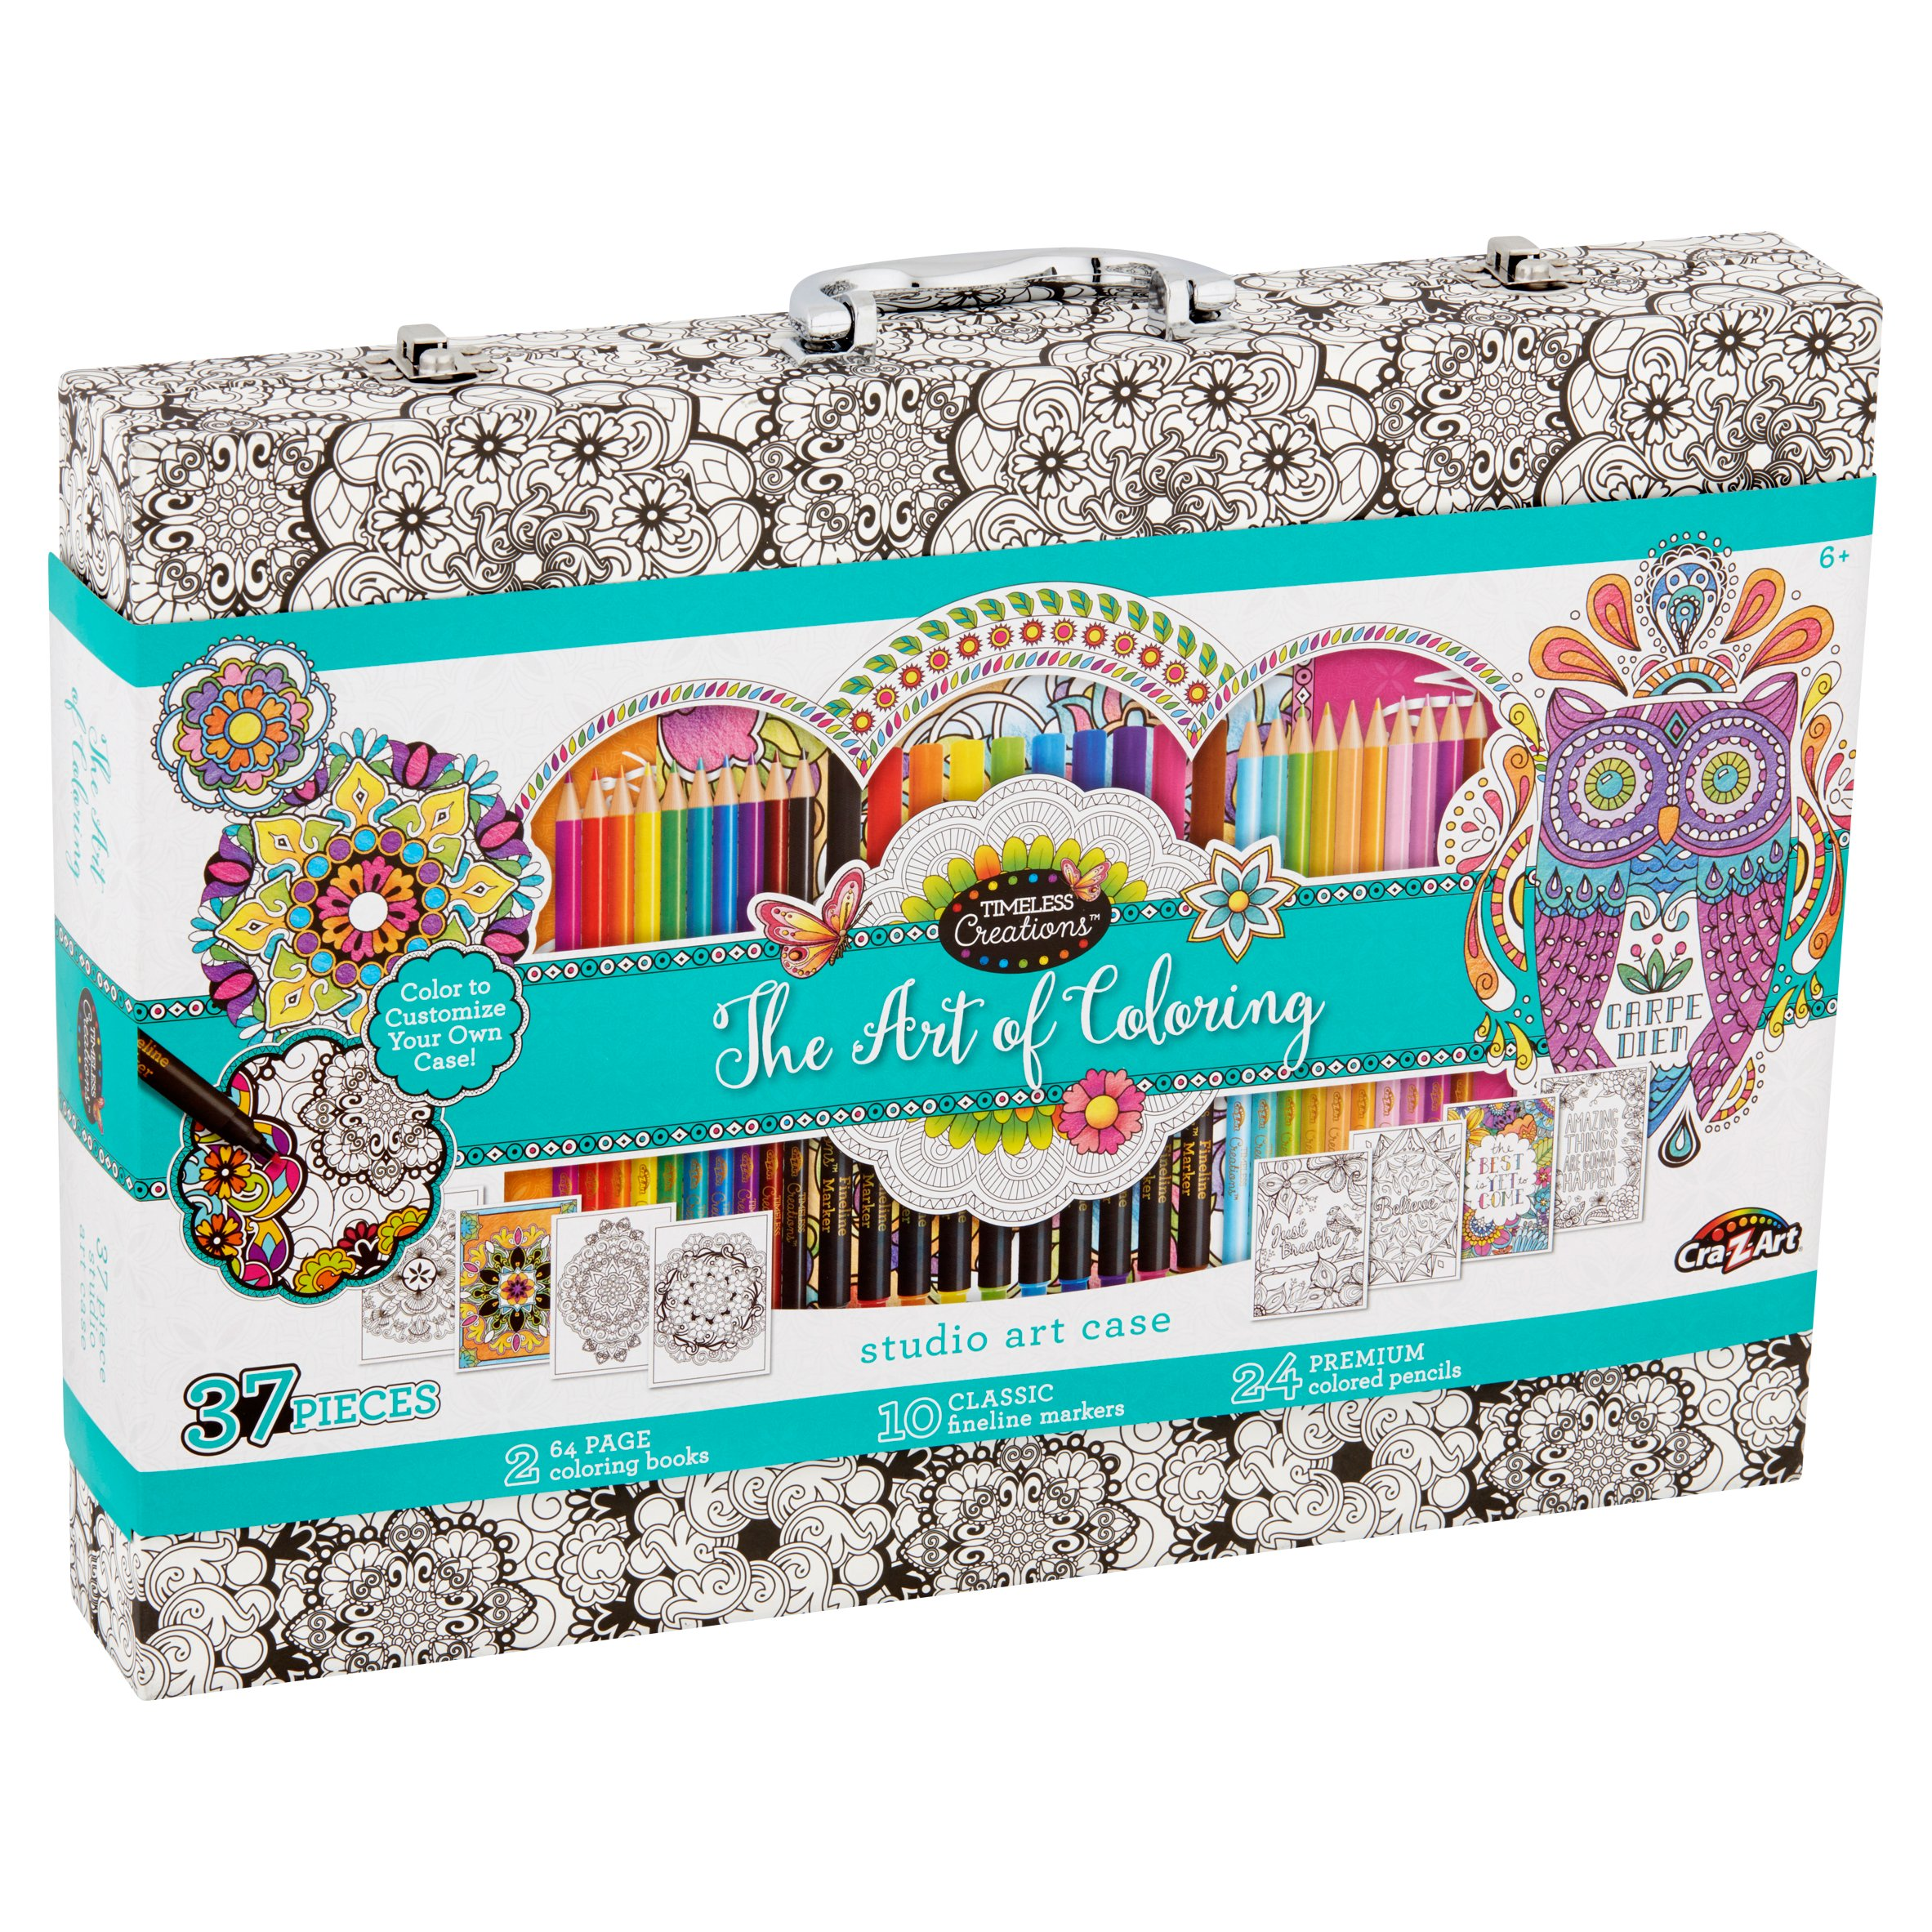 Cra-Z-Art Timeless Creations Art Of Coloring Adult Coloring Case